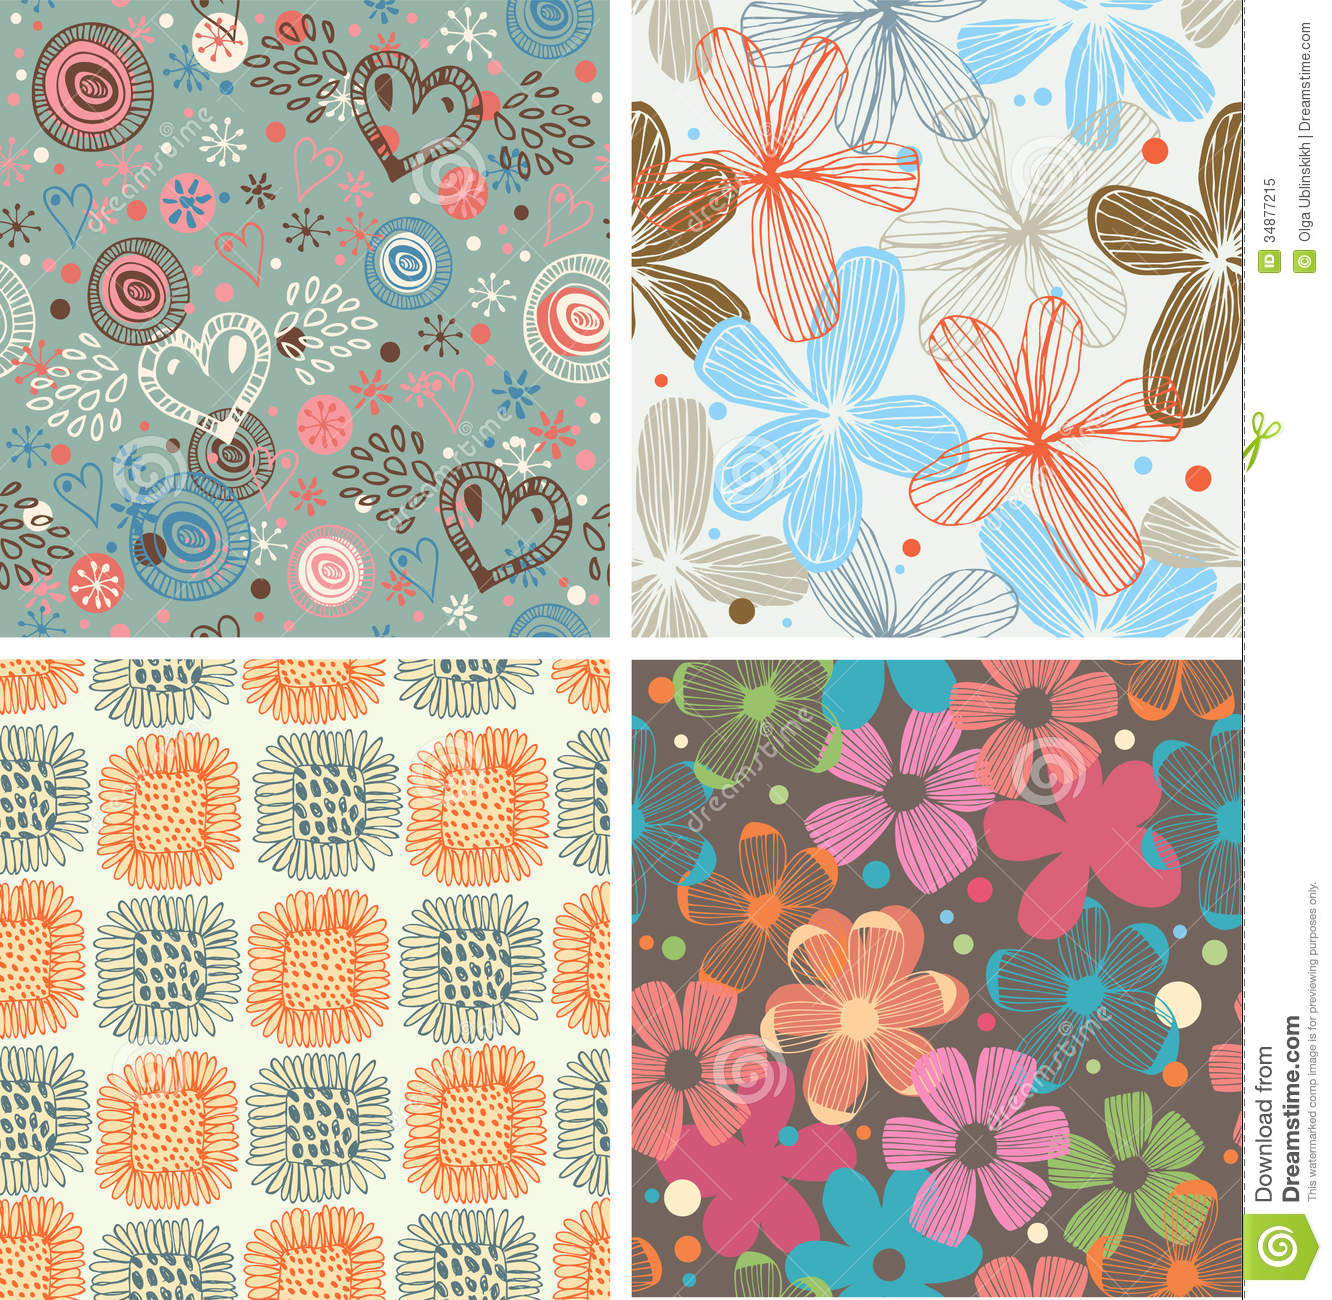 Cute Patterns For Wallpaper Cute Collection Of Floral Patterns Set Of Beautiful